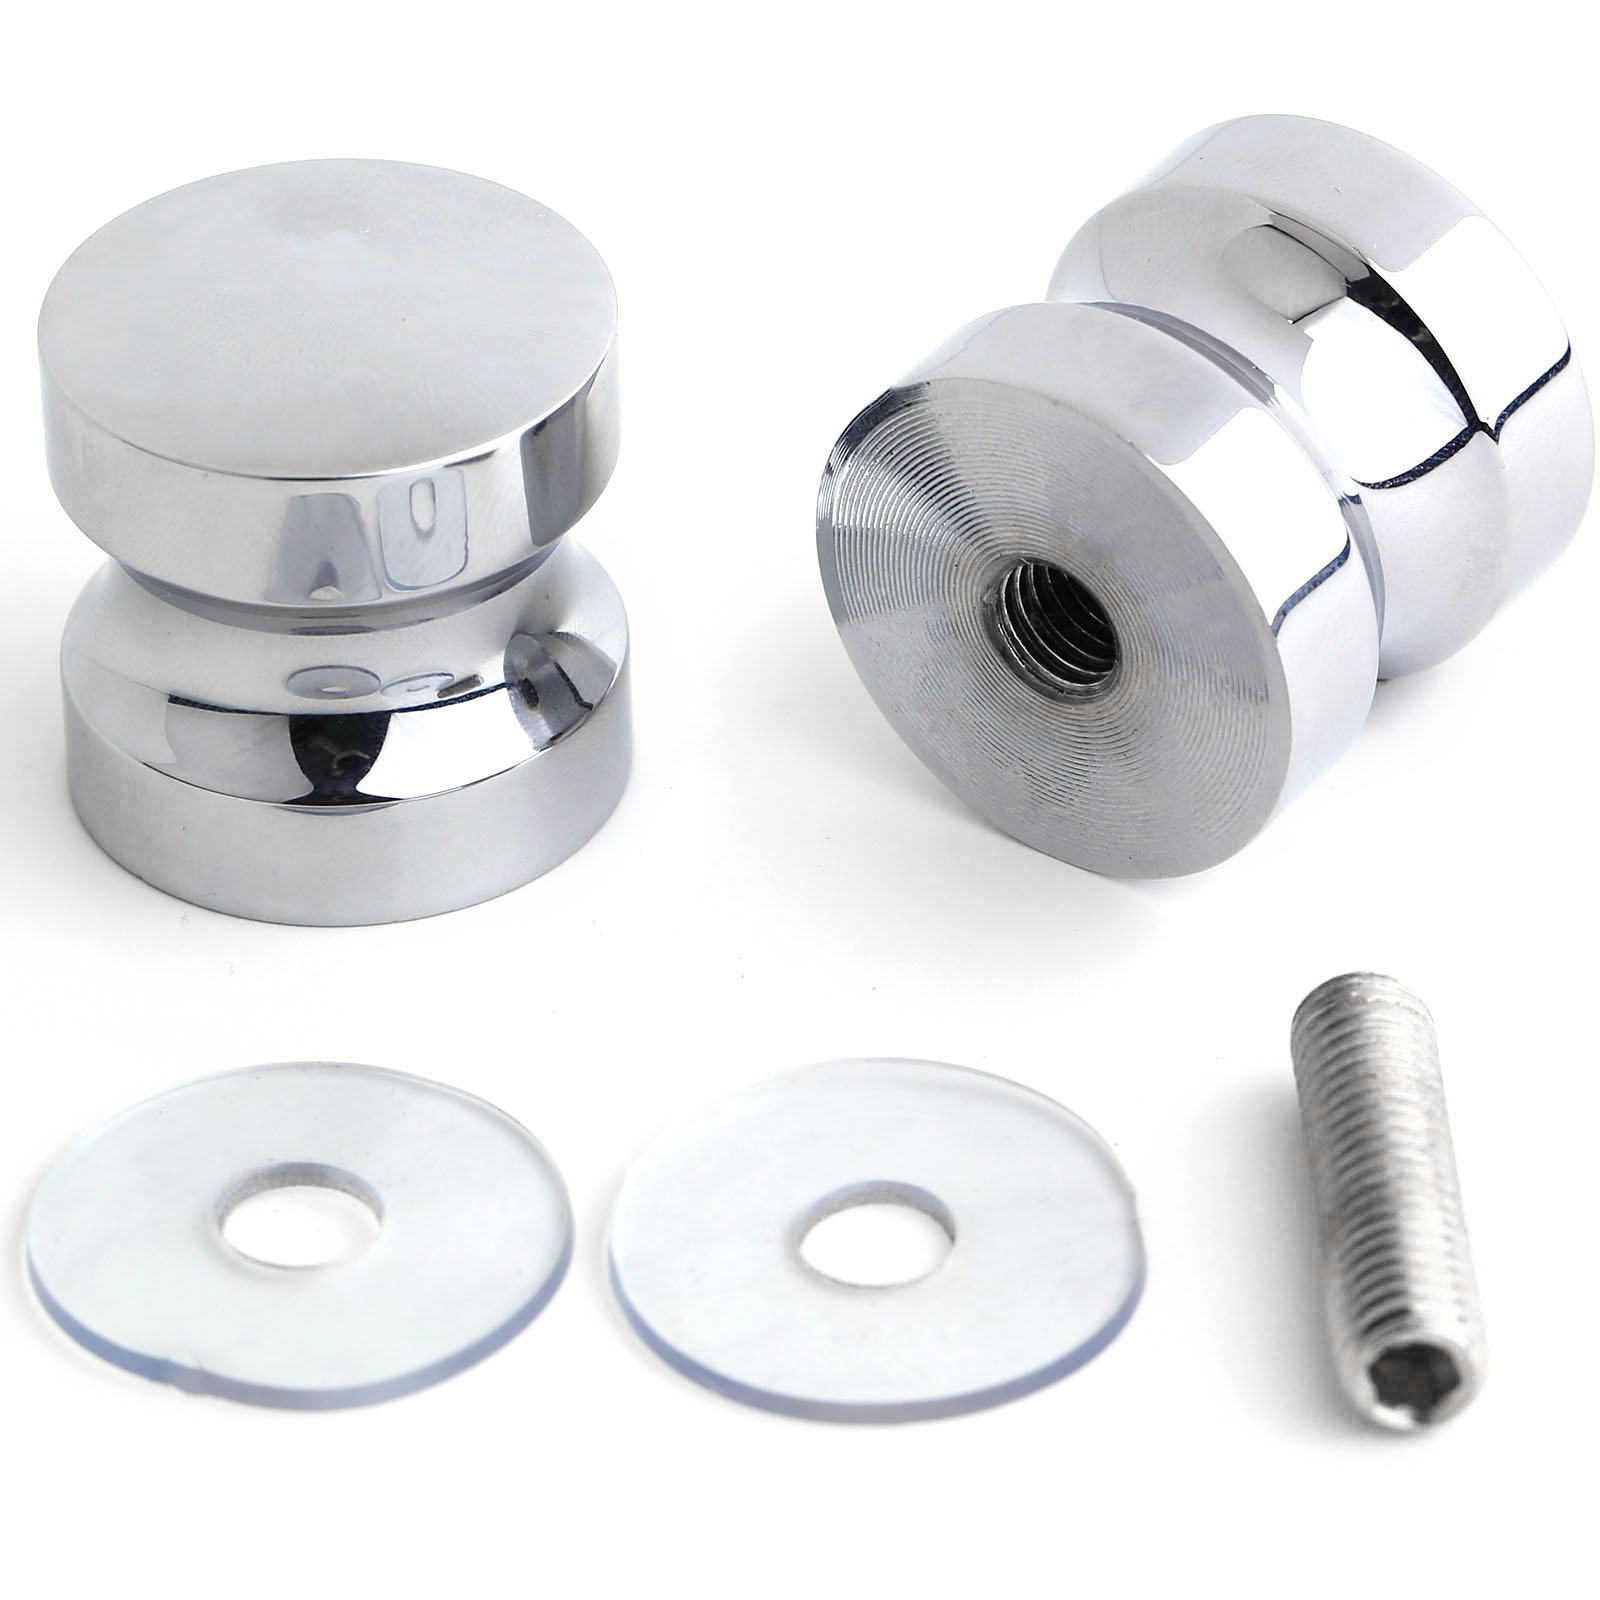 Bathroom Shower Knobs: 30mm Shower Bath Door Handle Knob Stainless Steel Silver